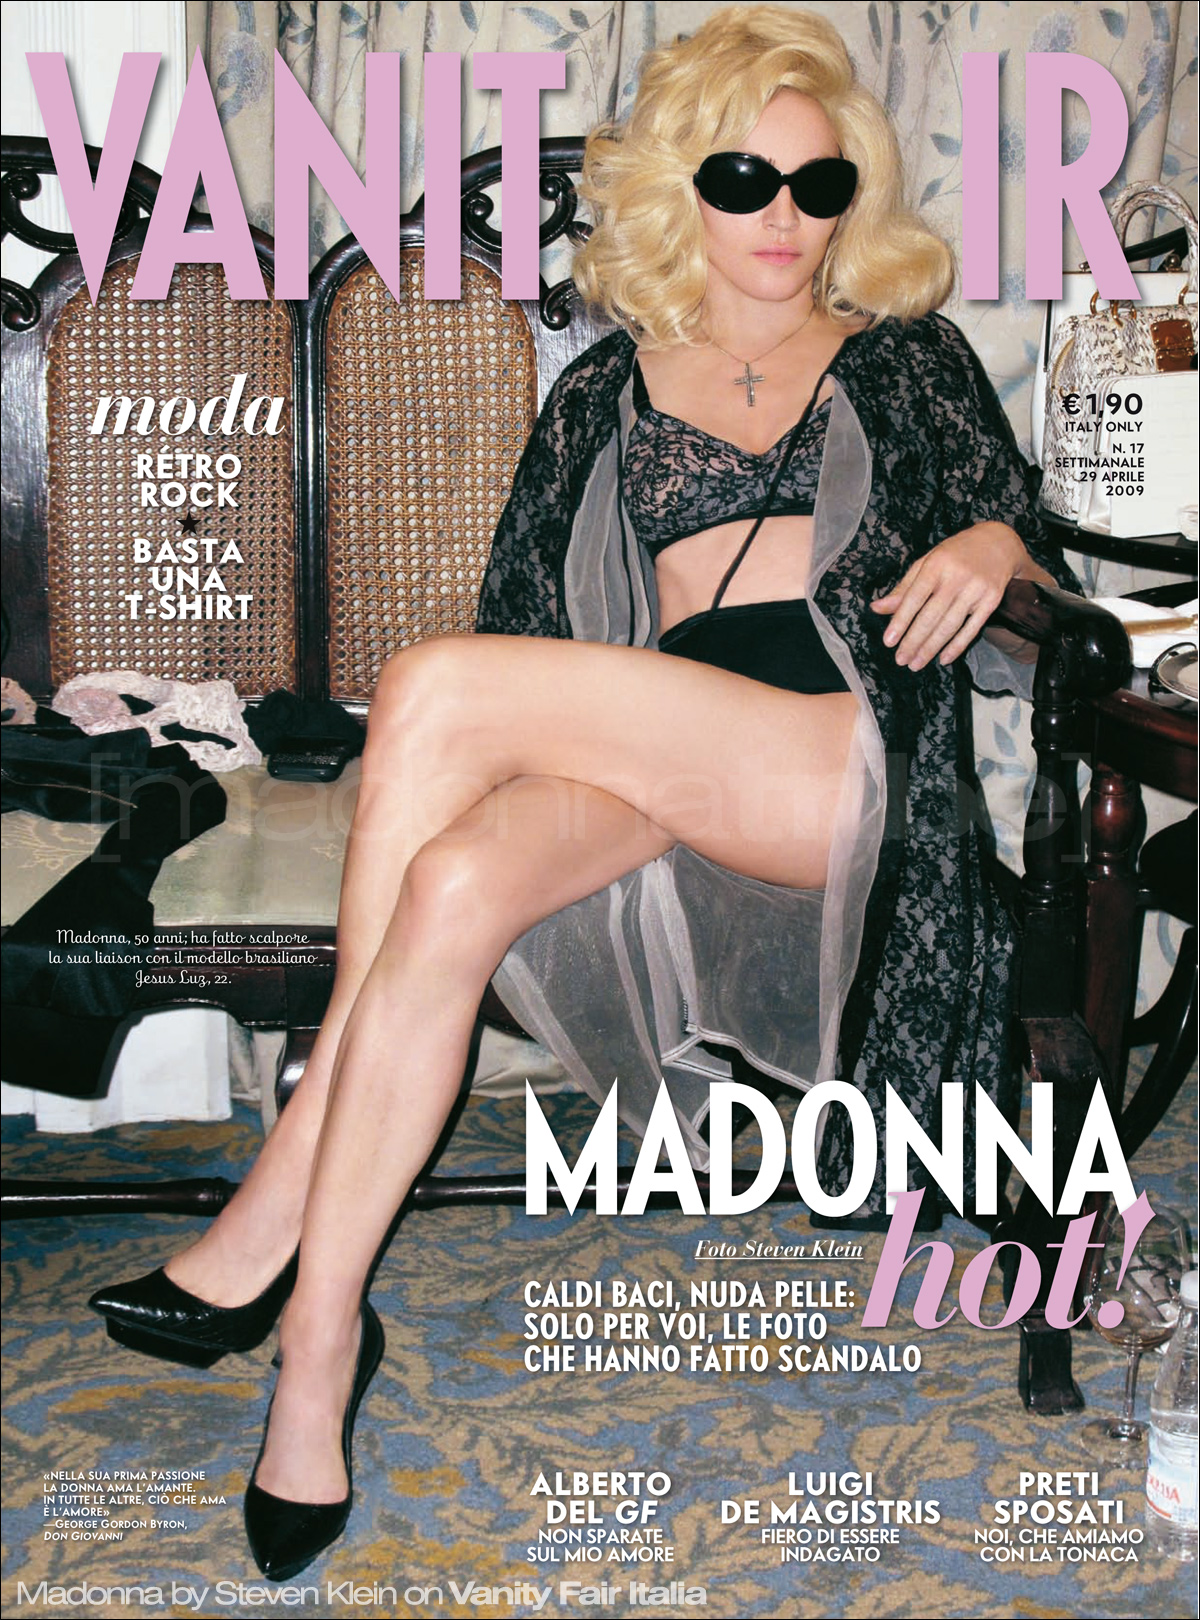 http://www.madonnatribe.com/i_press_18/vanity_fair_cover_002.jpg